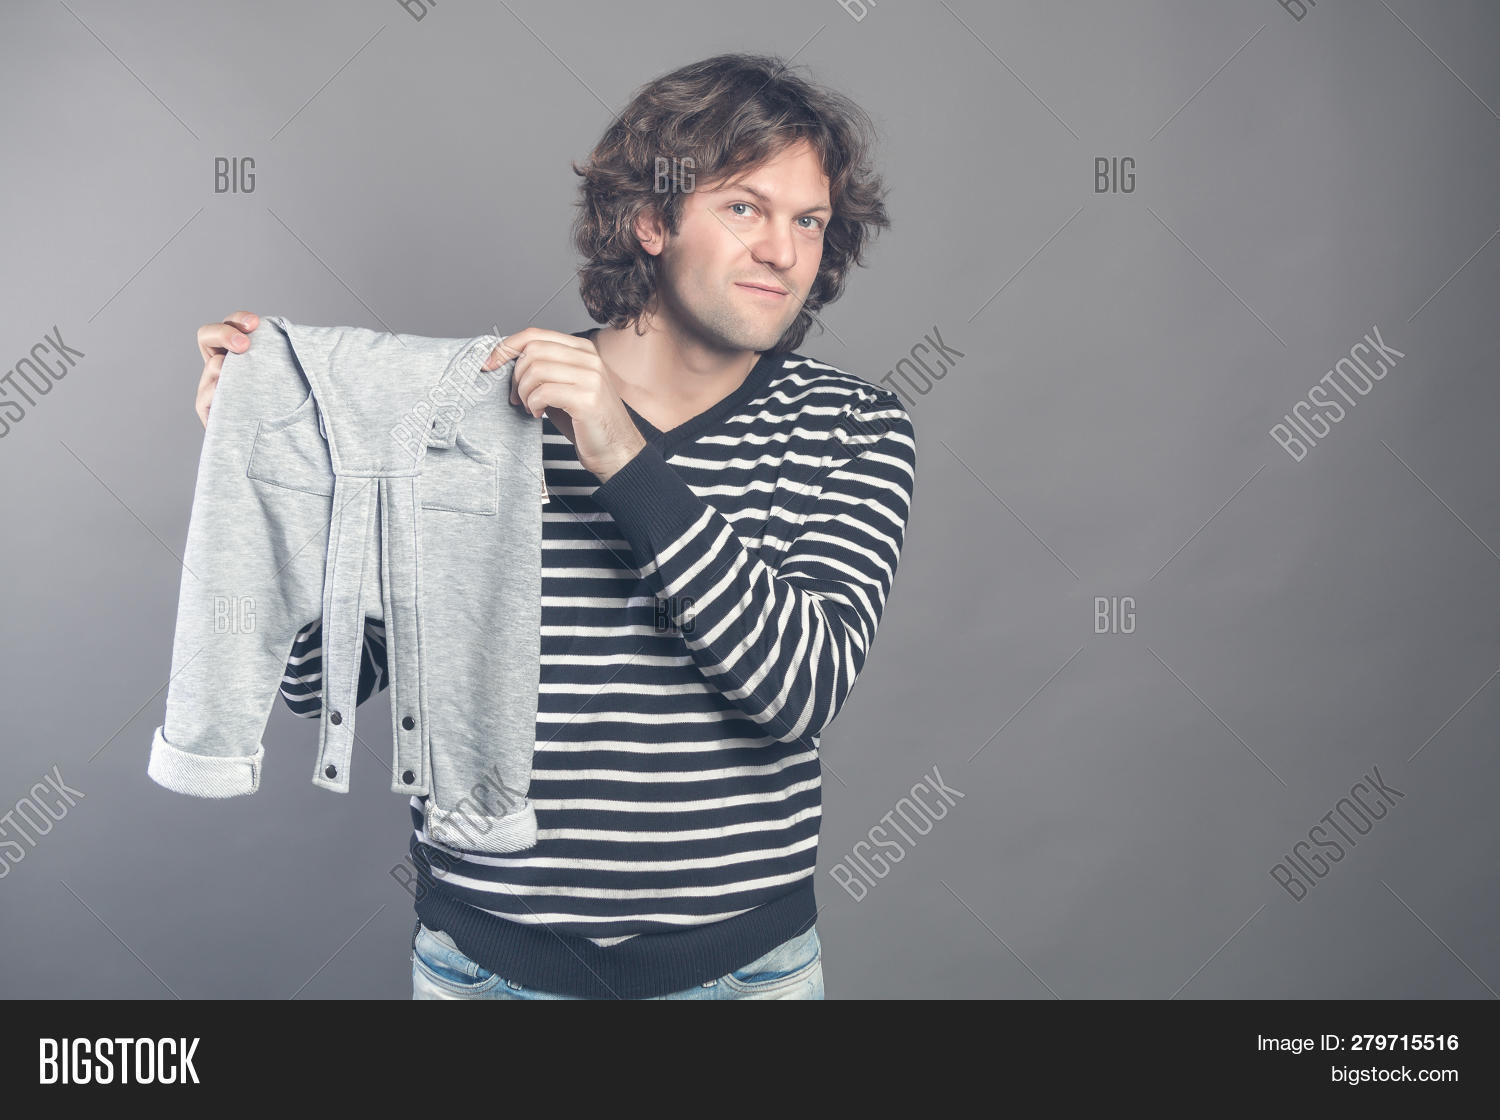 4a696c0d4 Young Caucasian Male Boasting About New Stylish Baby Clothes For His Son  Holding In Hands And